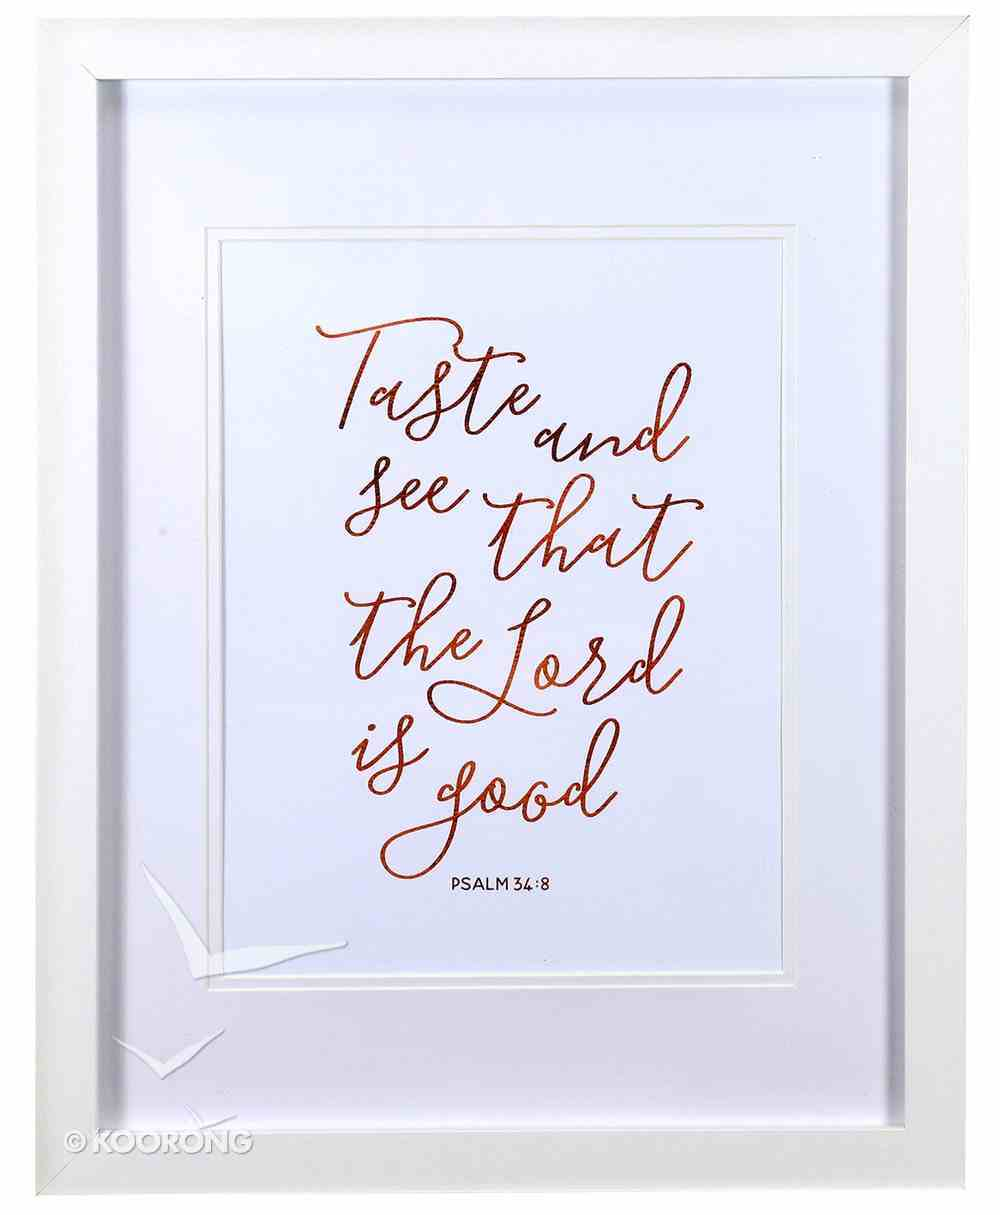 Medium Framed Copper Calligraphy Print: Taste and See, Psalm 34:8 Plaque